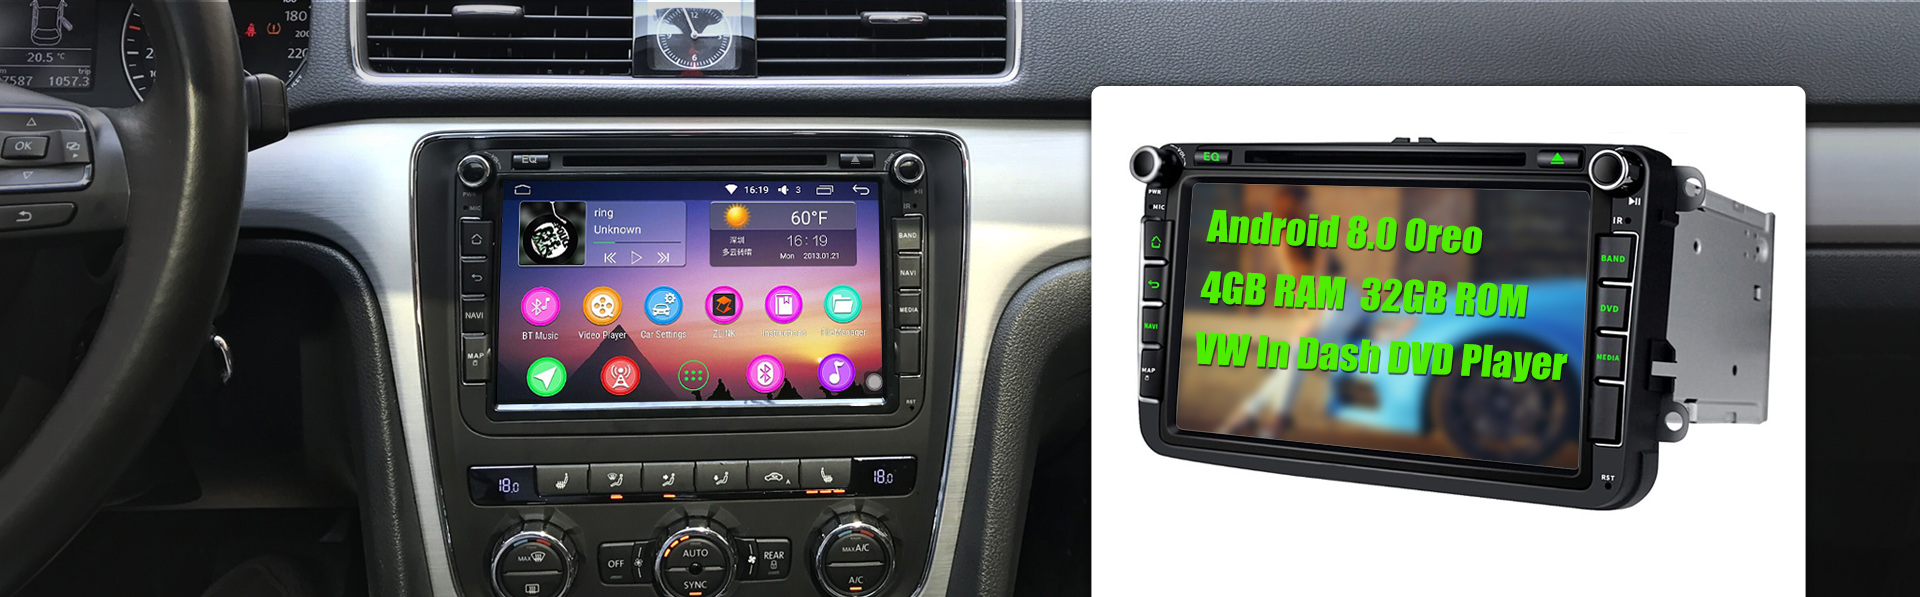 vw autoradio, golf gps navigation system, vw android head unit, vw car stereo